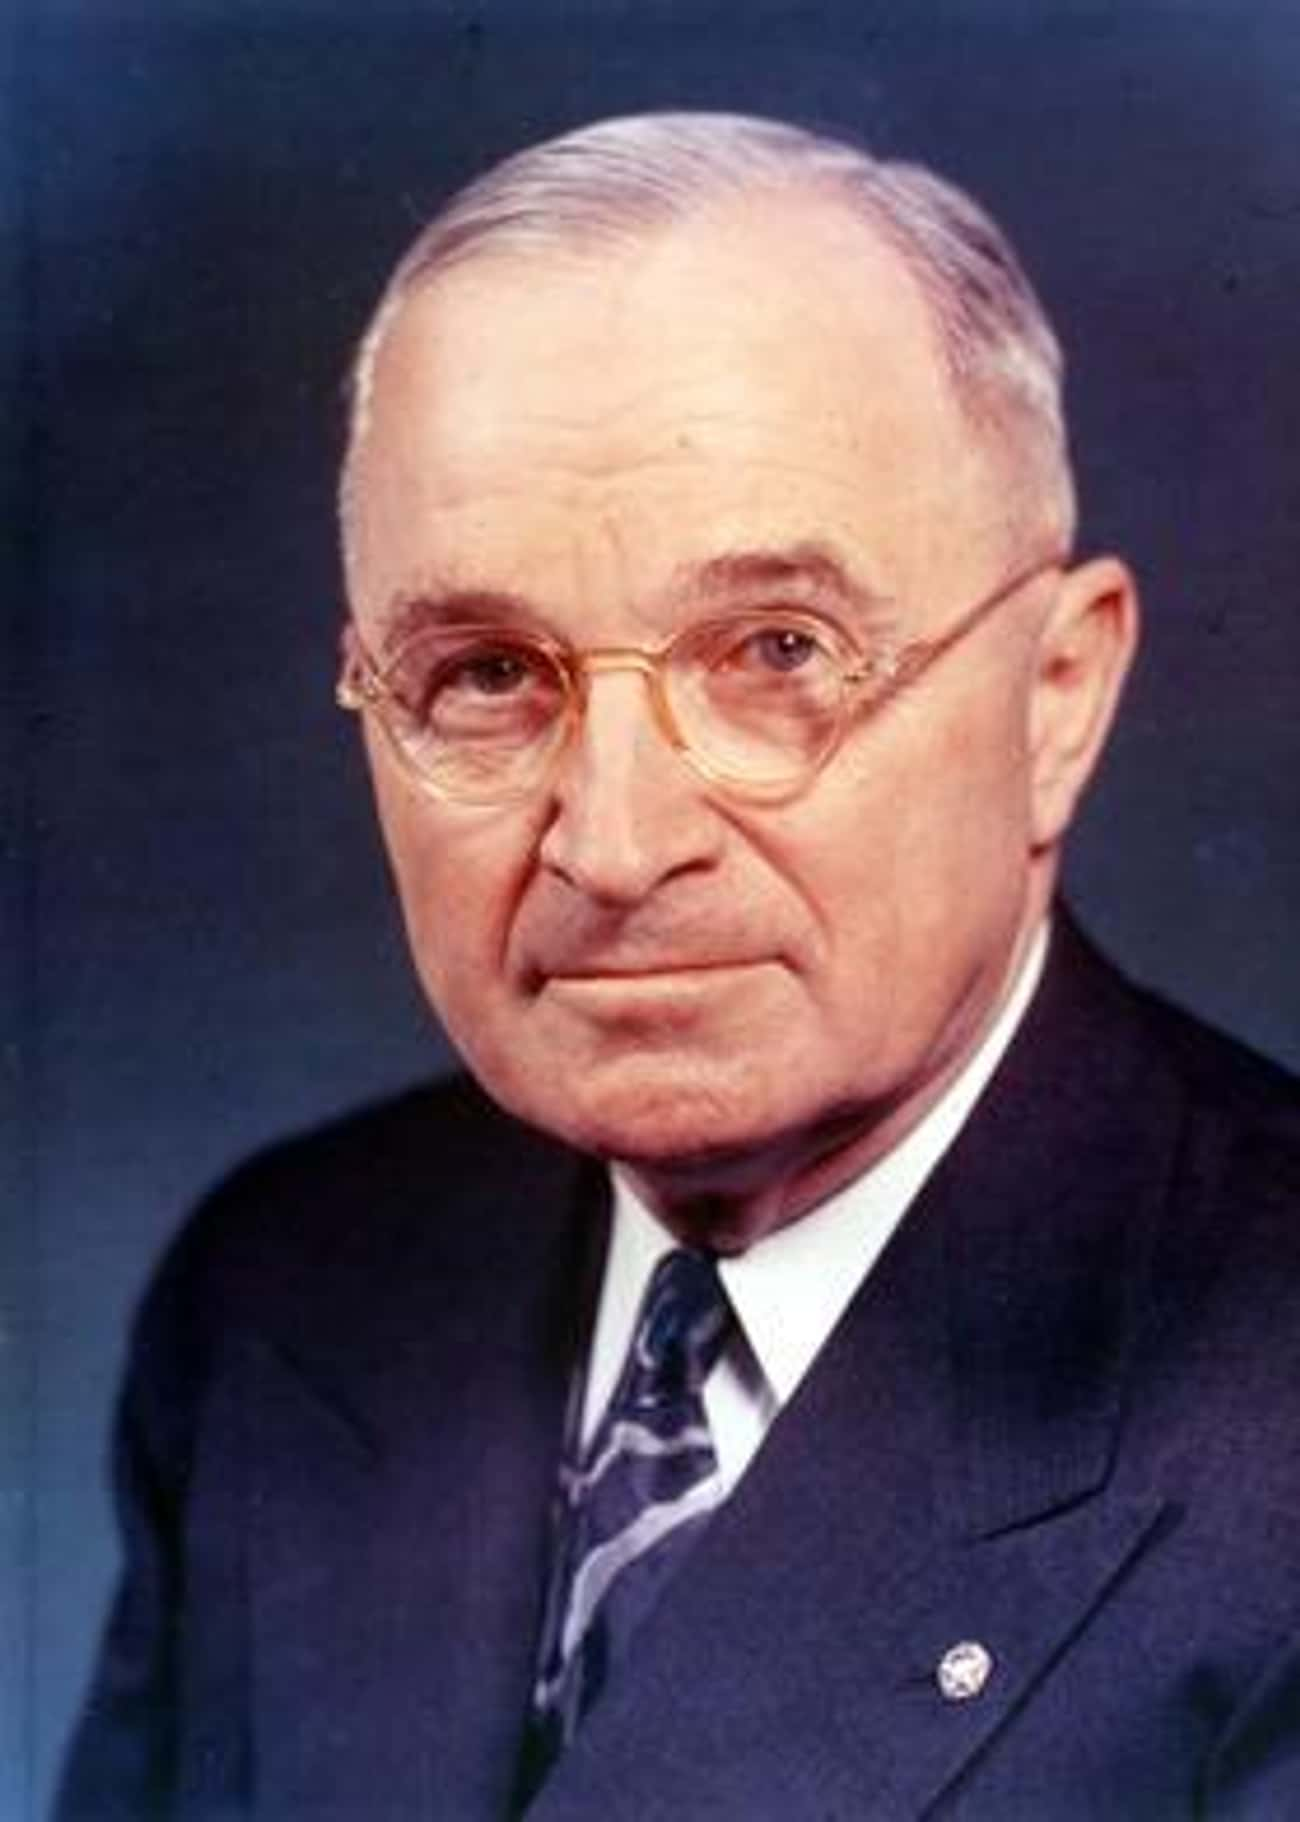 Harry Truman - His Mom's Fried Chicken